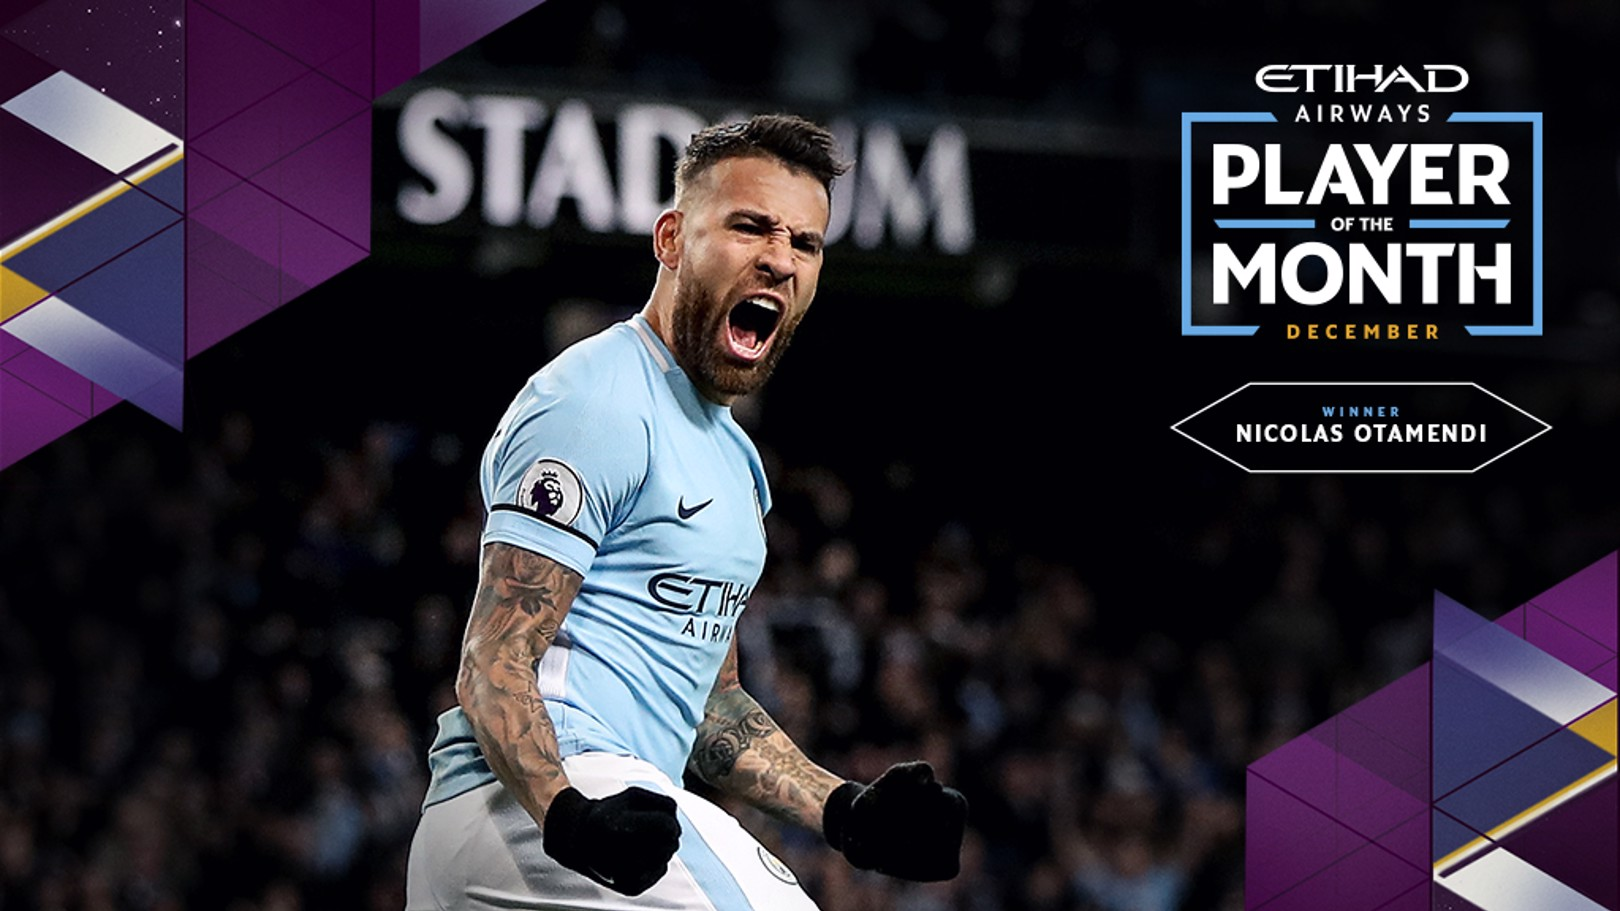 WINNER: Nicolas Otamendi is the December Player of the Month.